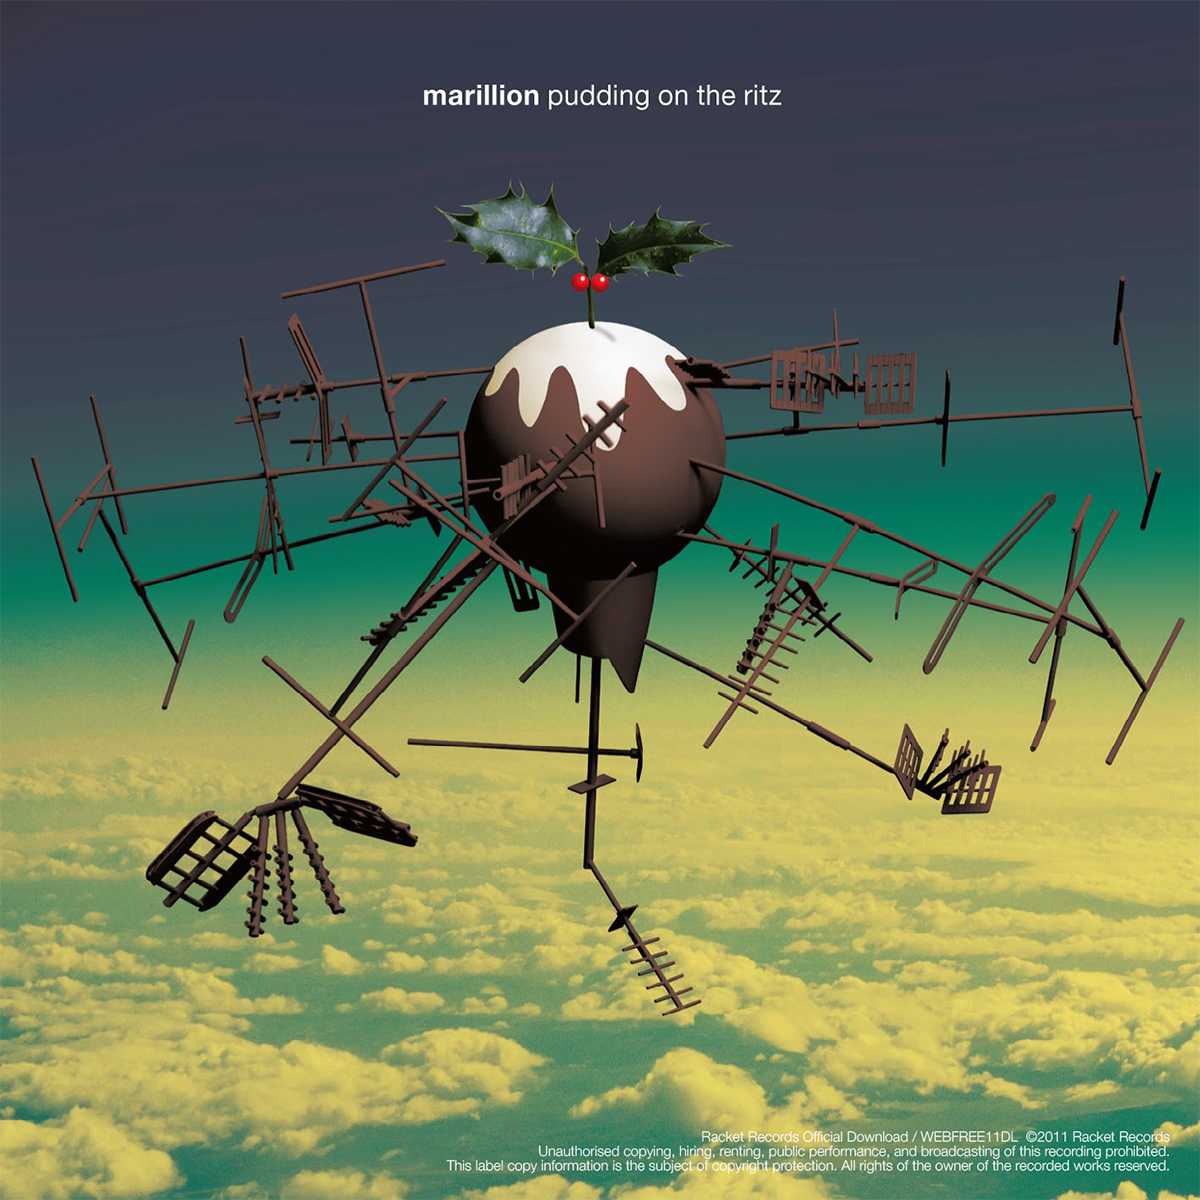 PUDDING ON THE RITZ 256 KBPS ALBUM DOWNLOAD